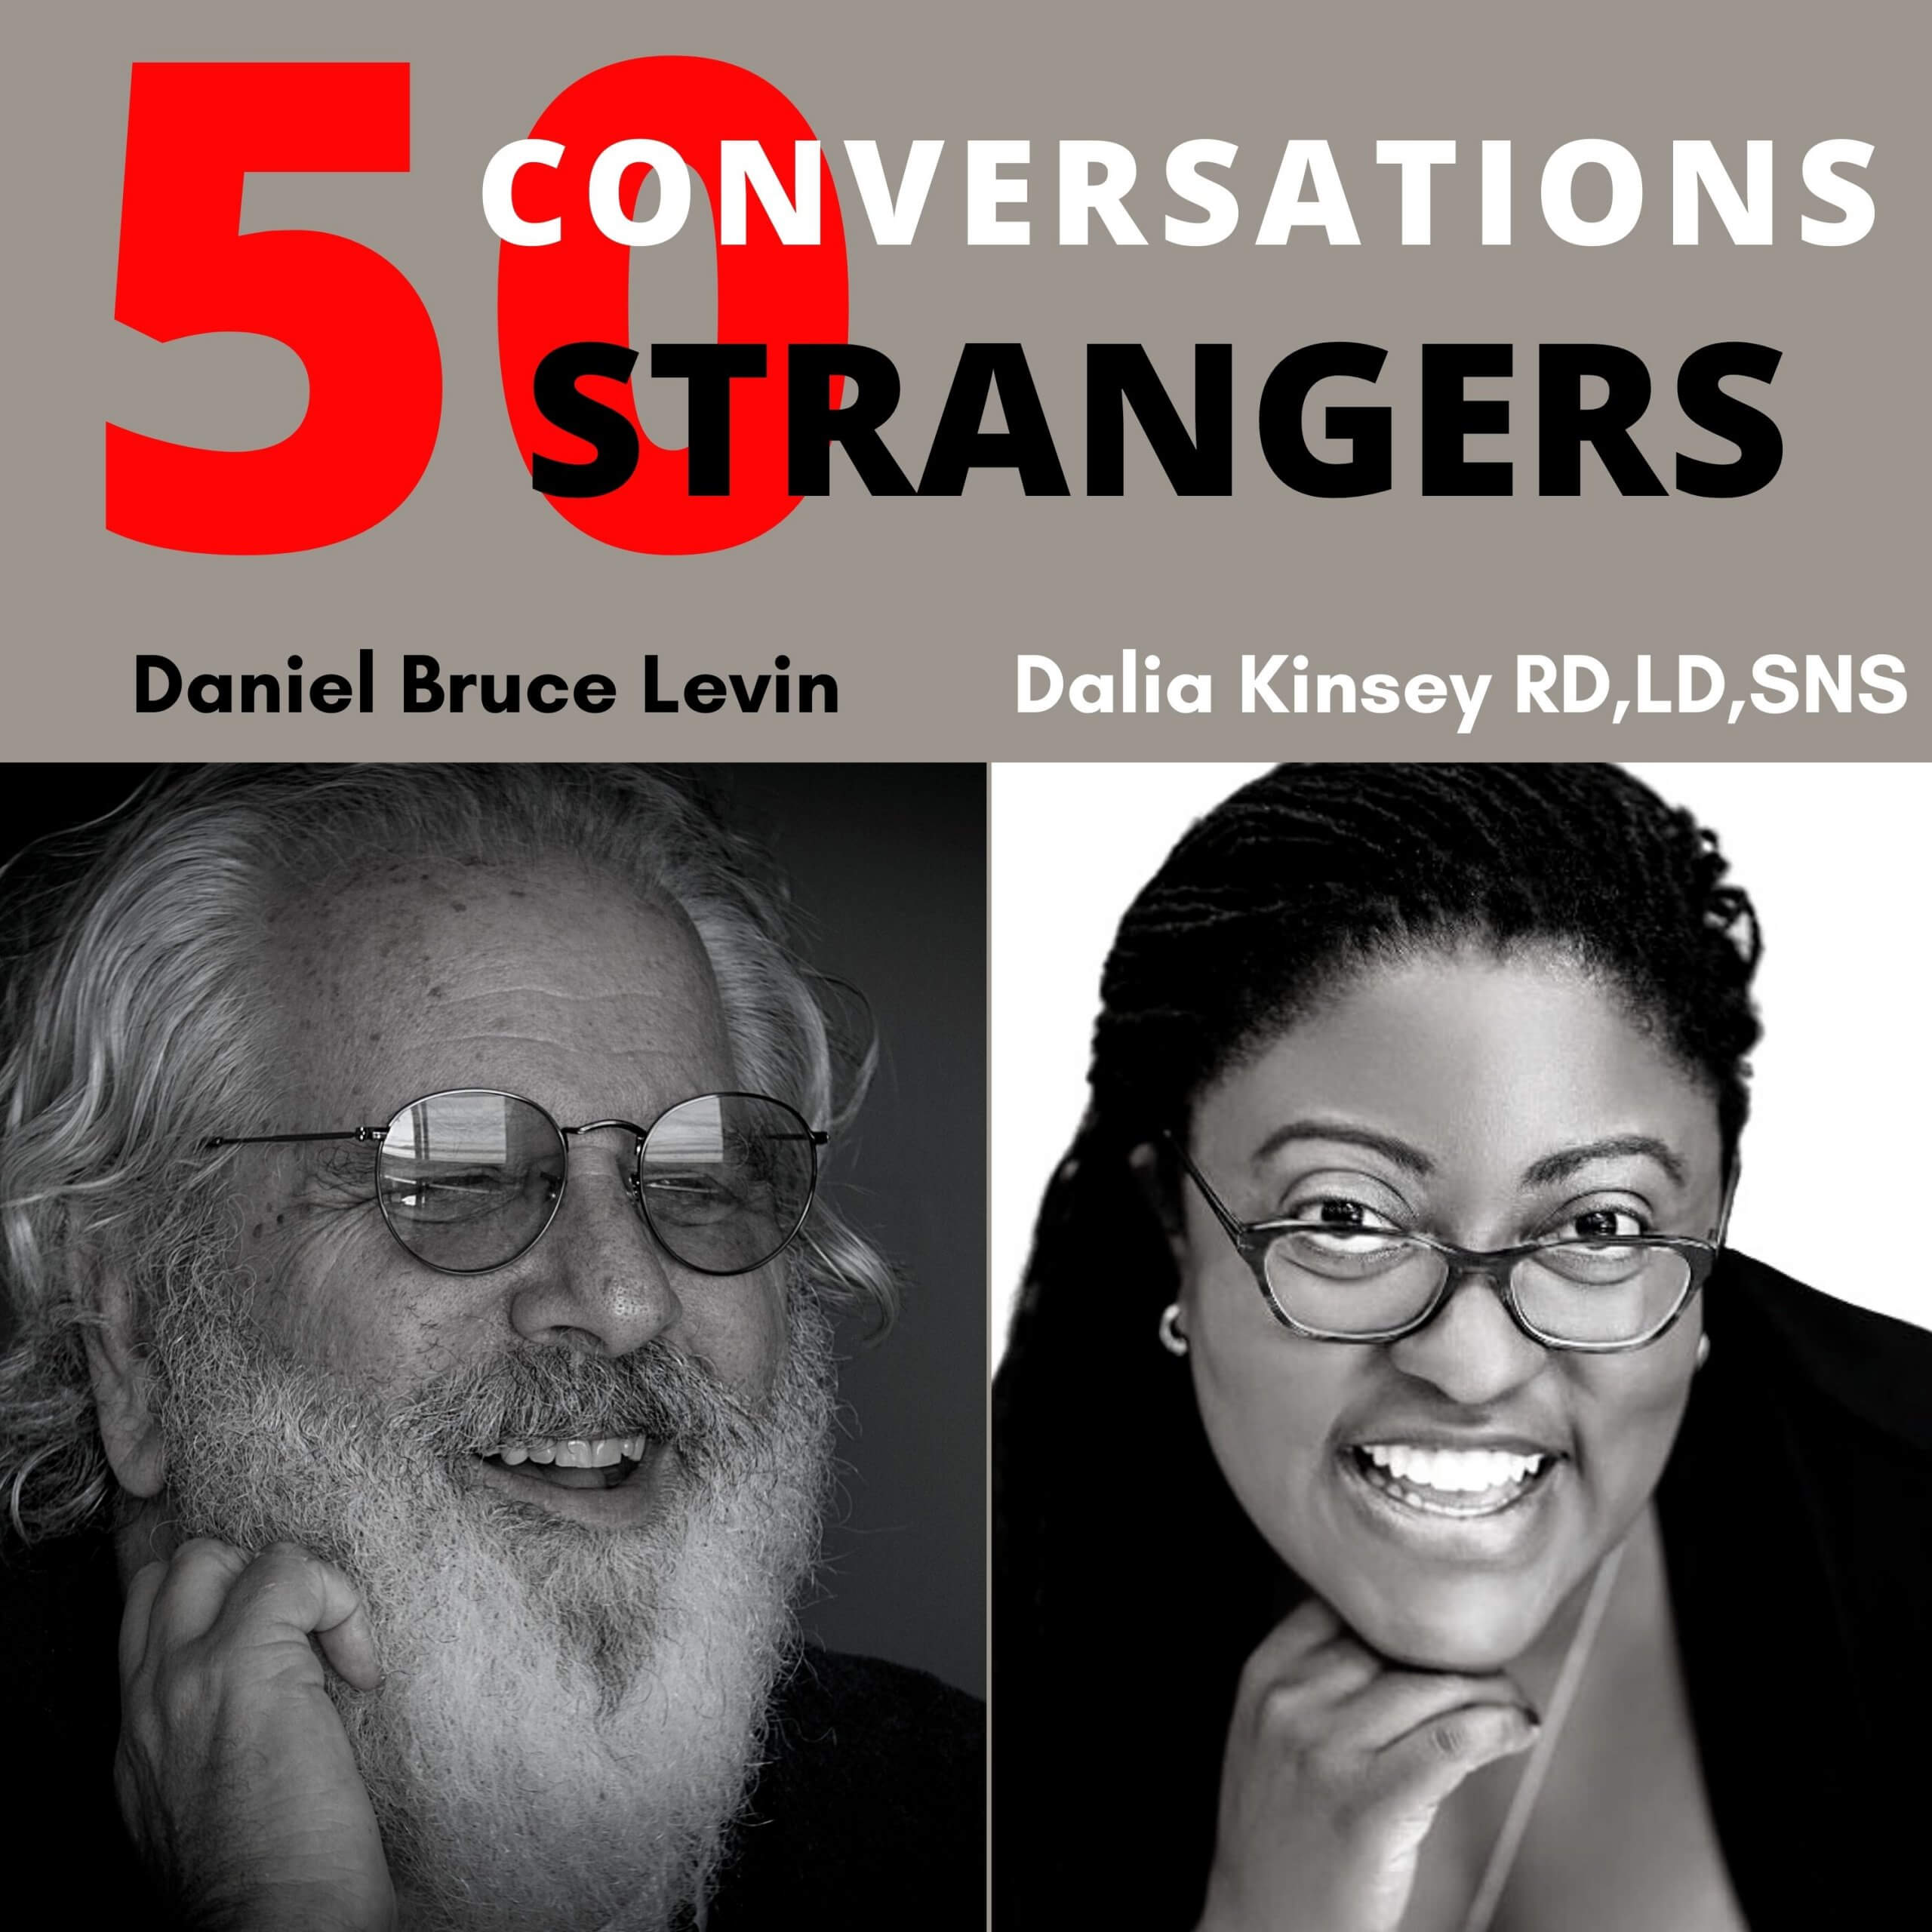 50 Conversations with 50 Strangers Dalia Kinsey